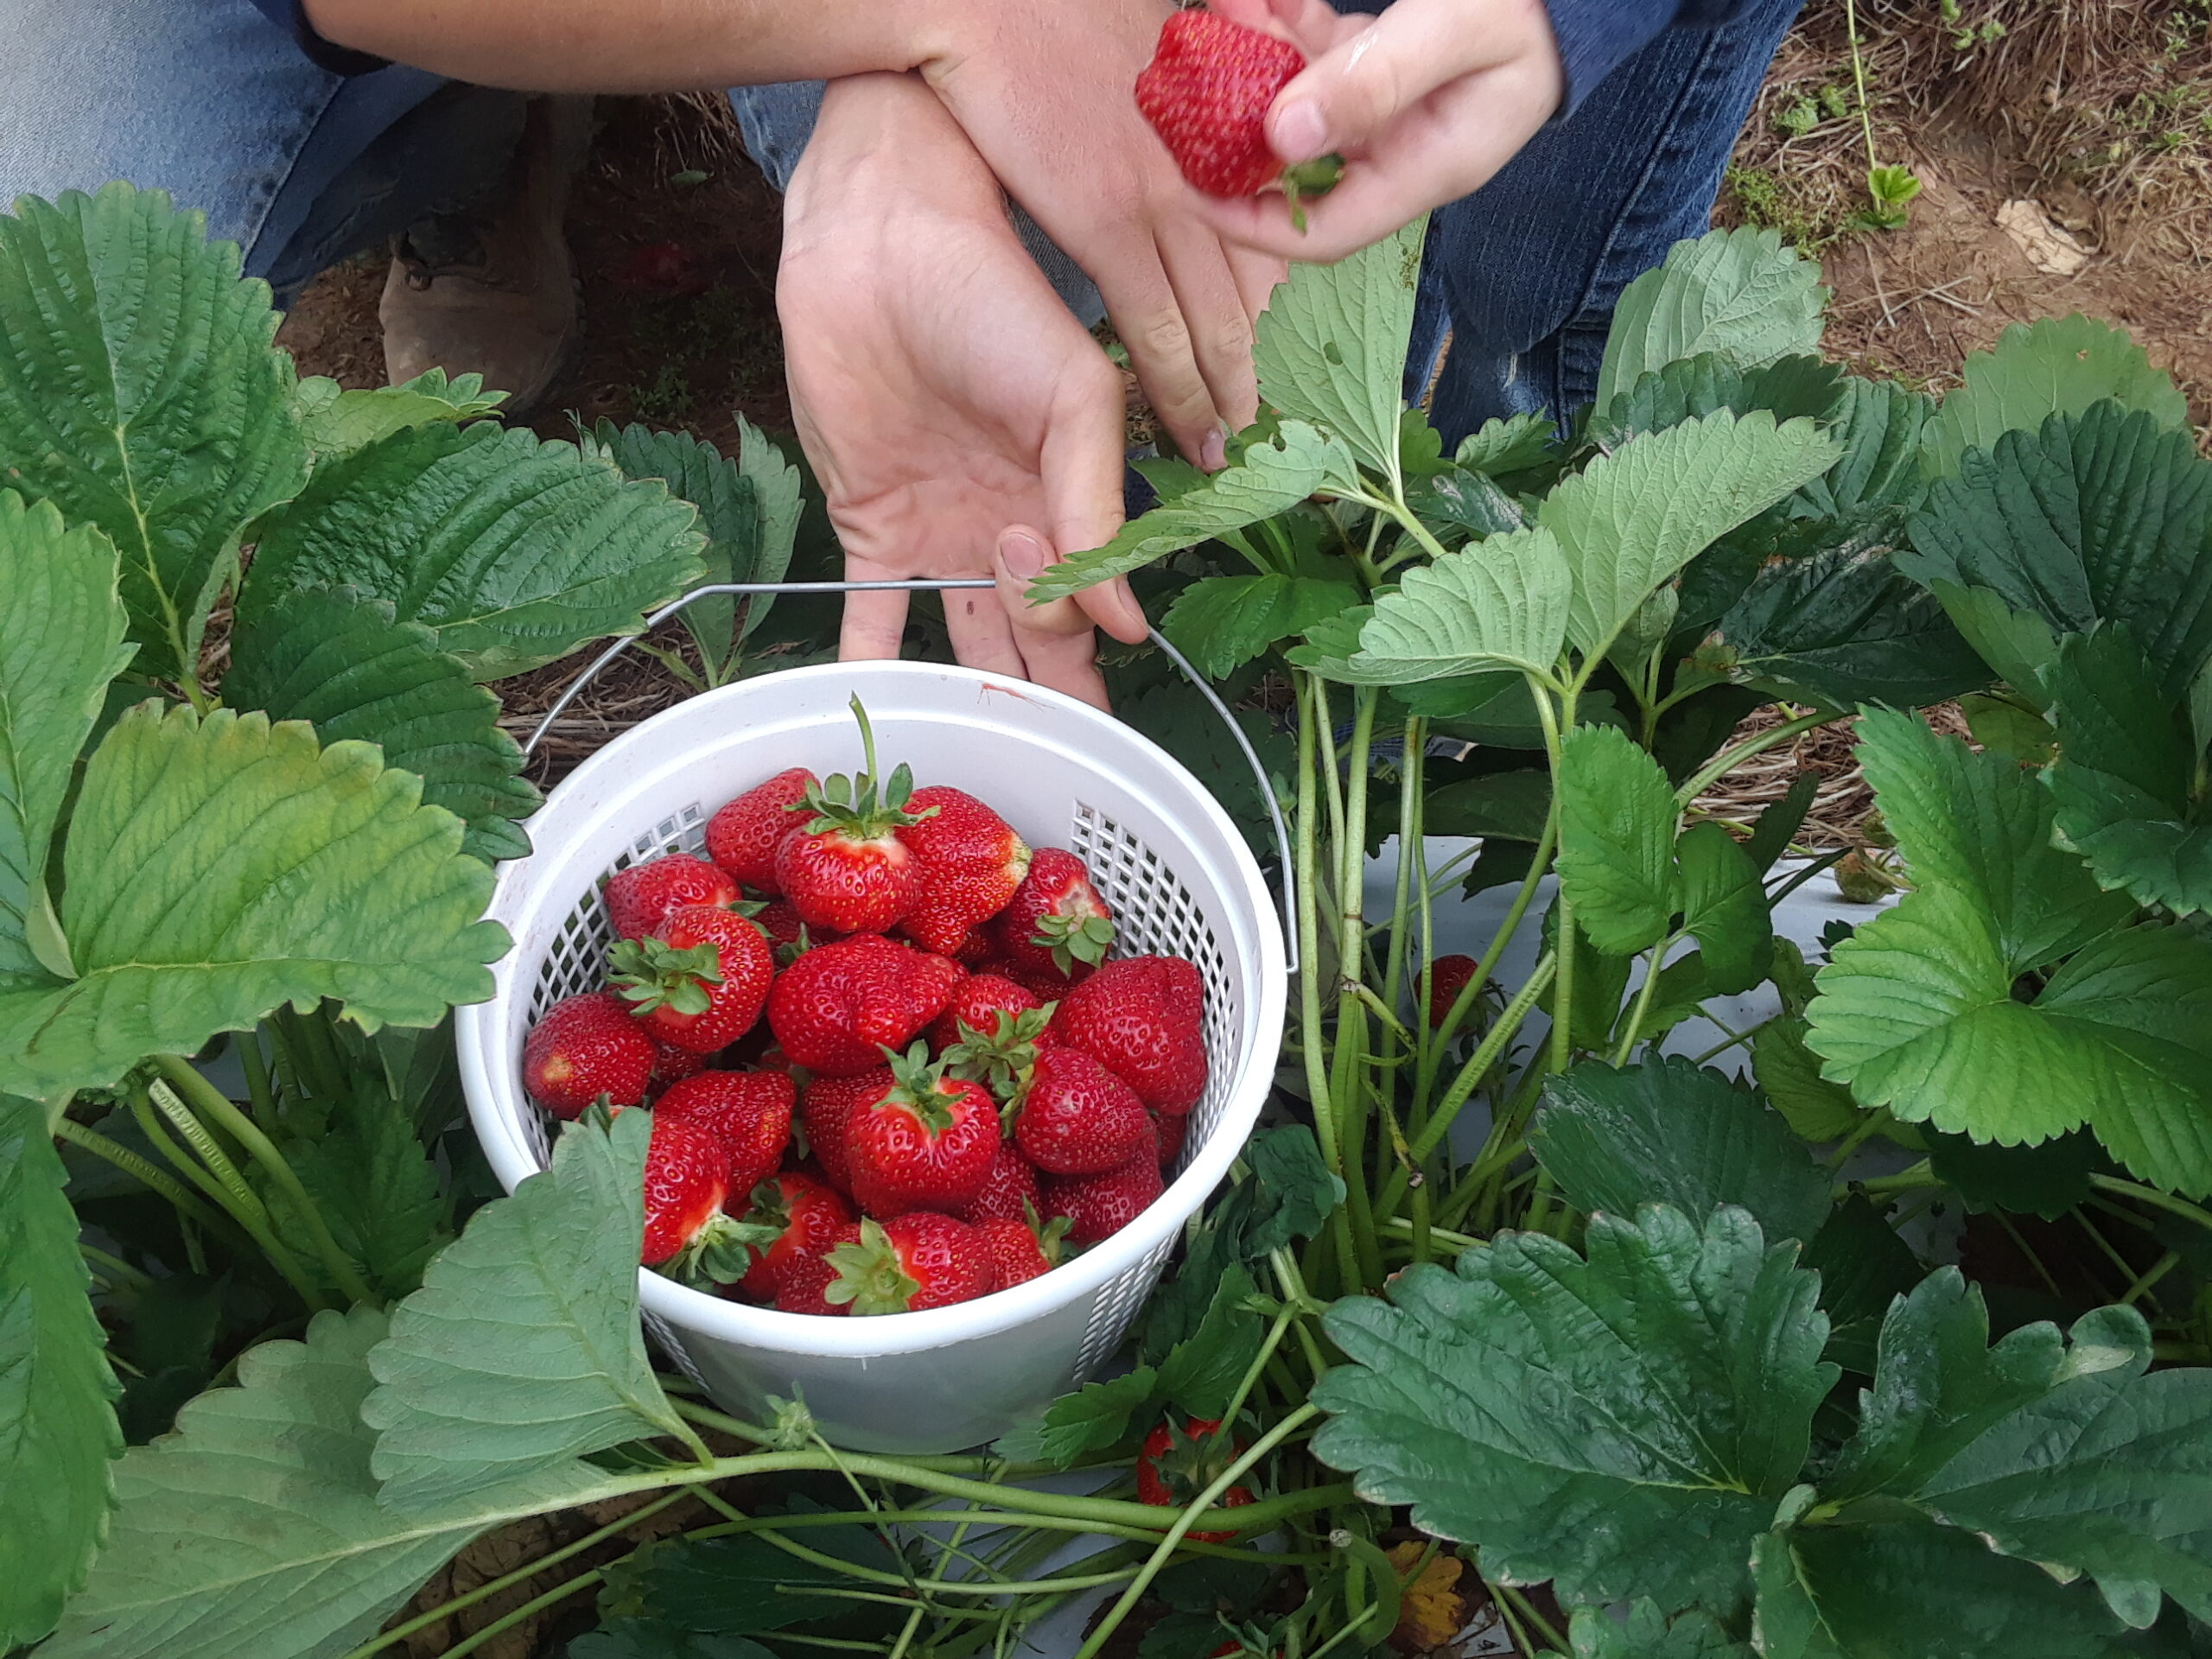 Strawberry update:  Yes, we STILL have Strawberries and the pickin' is good!